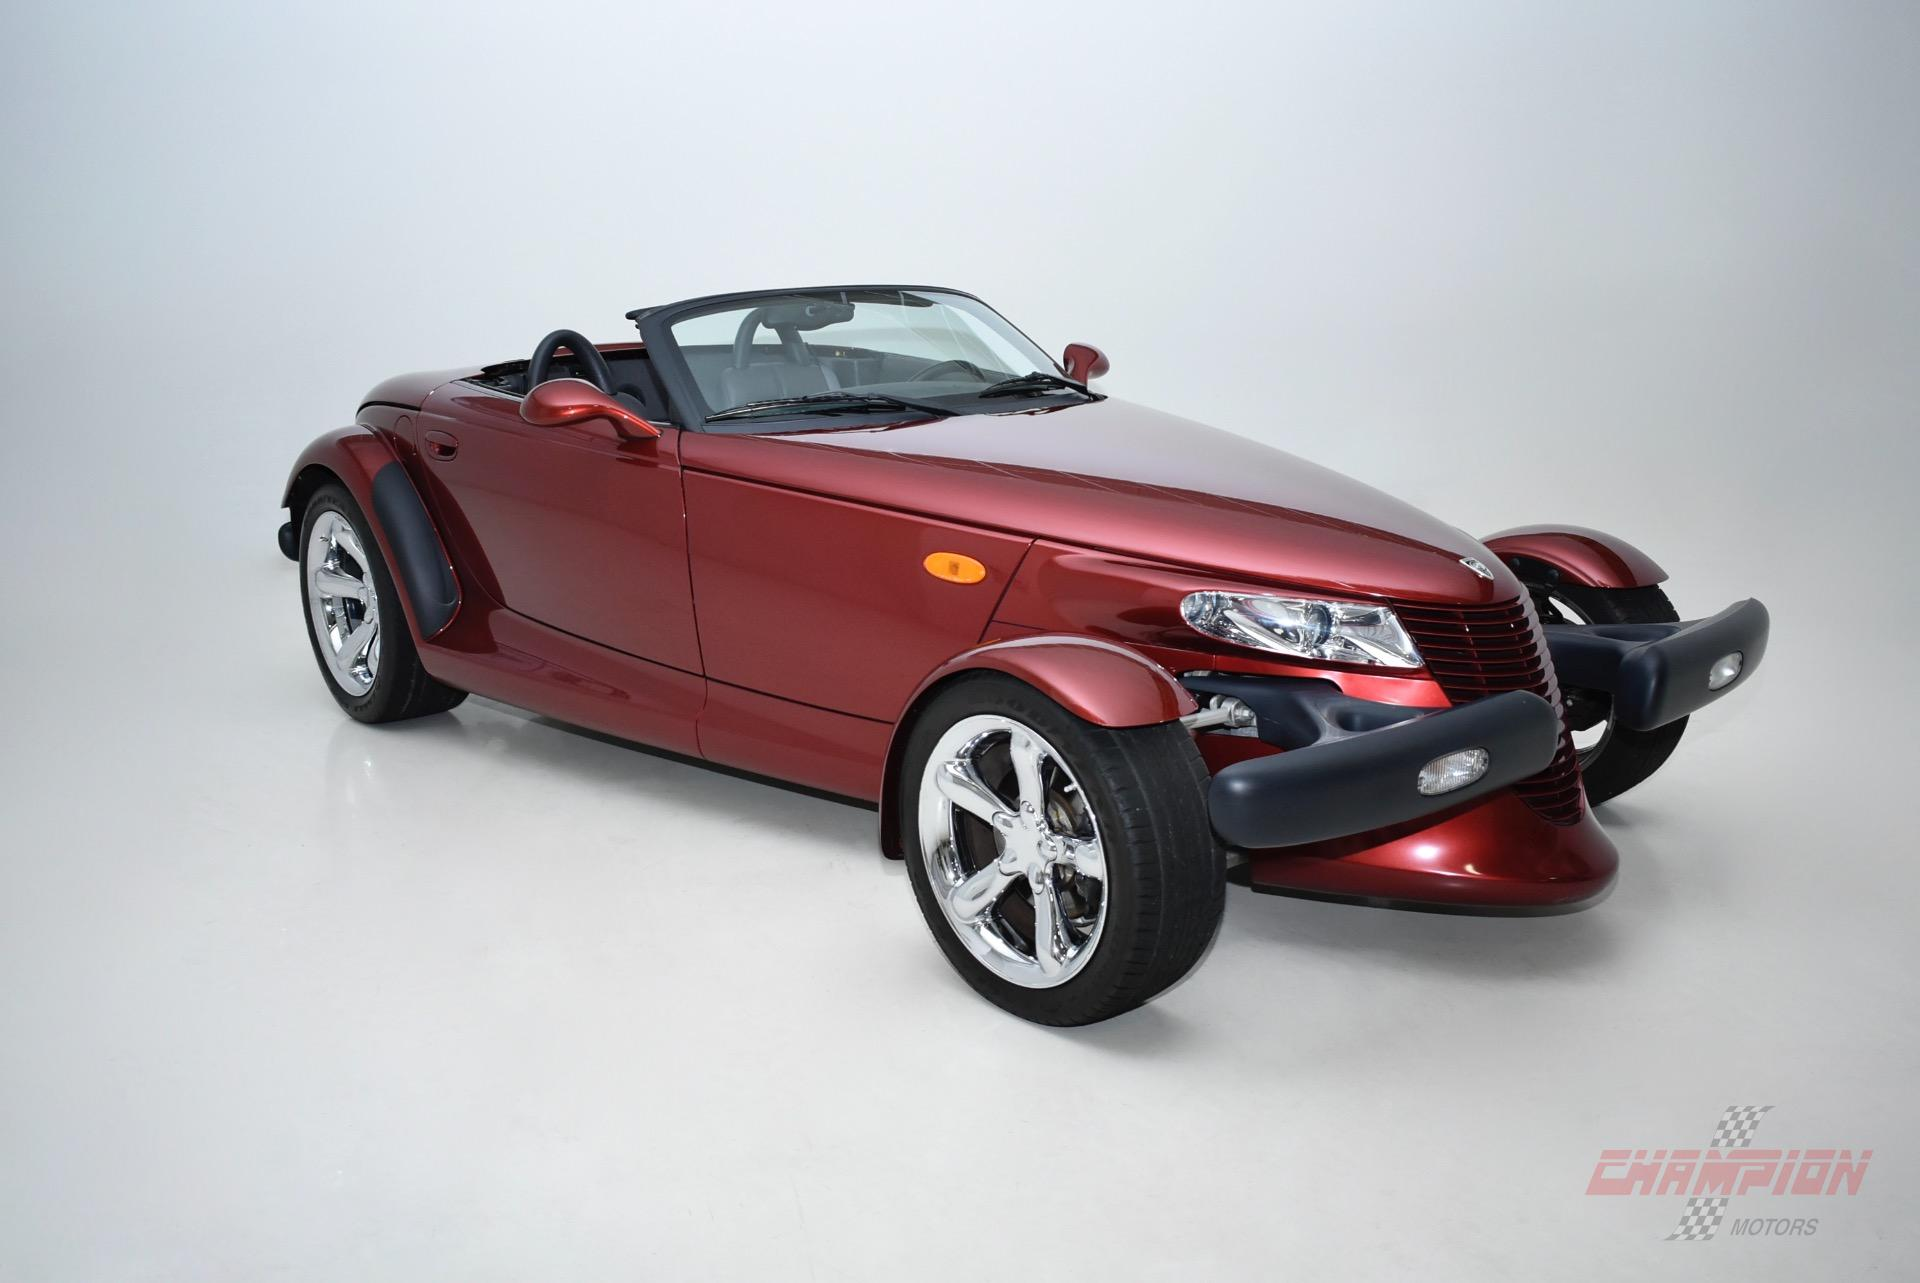 2002 Chrysler Prowler Champion Motors International l Exotic